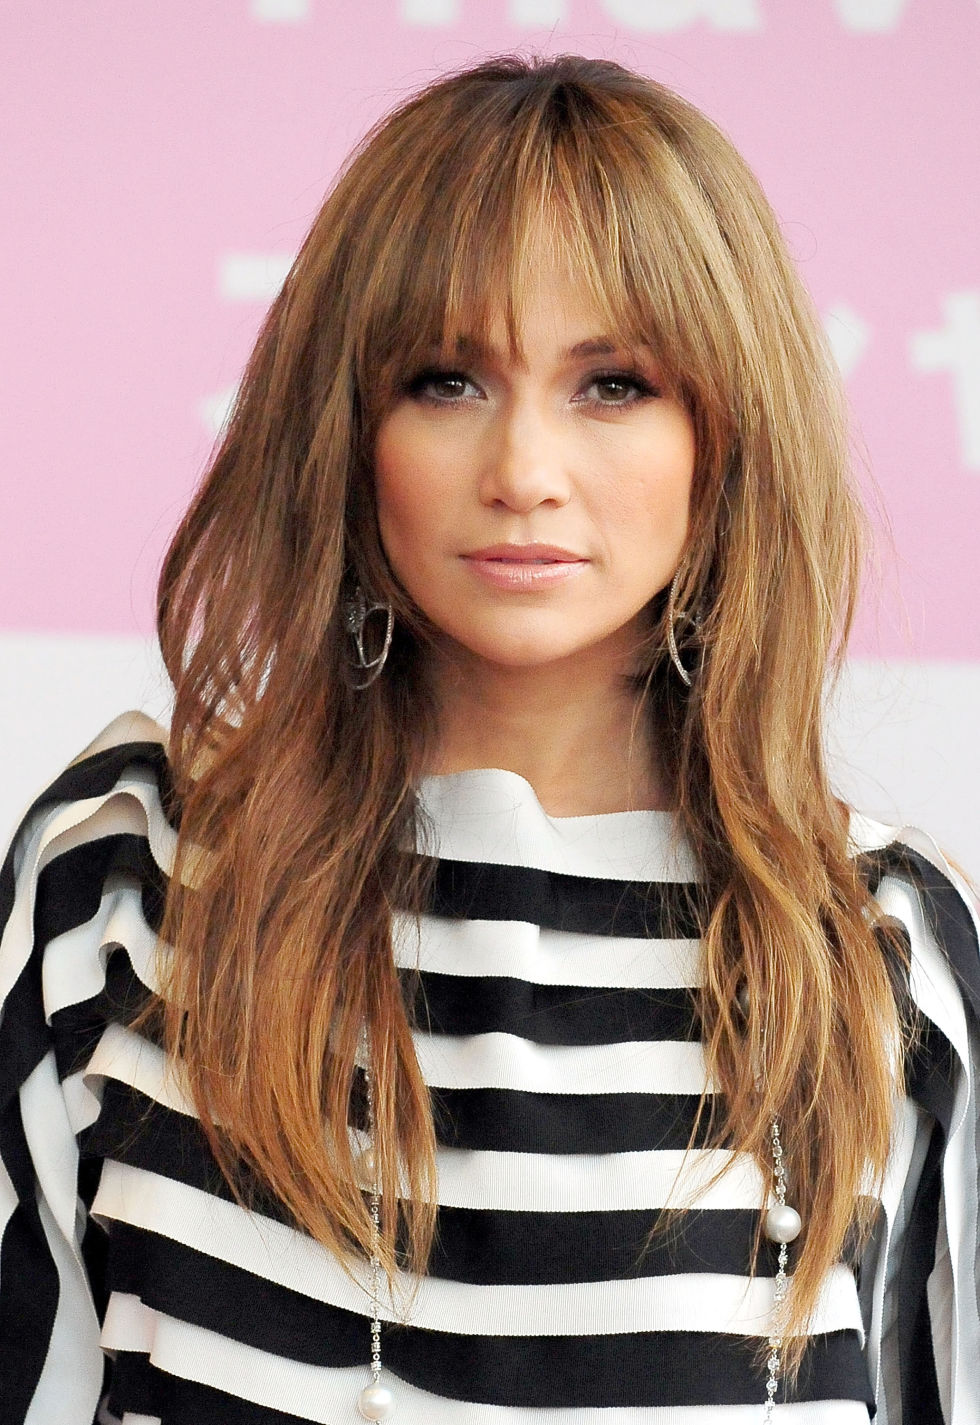 Phenomenal 25 Long Hairstyles With Bangs Best Celebrity Long Hair With Short Hairstyles Gunalazisus